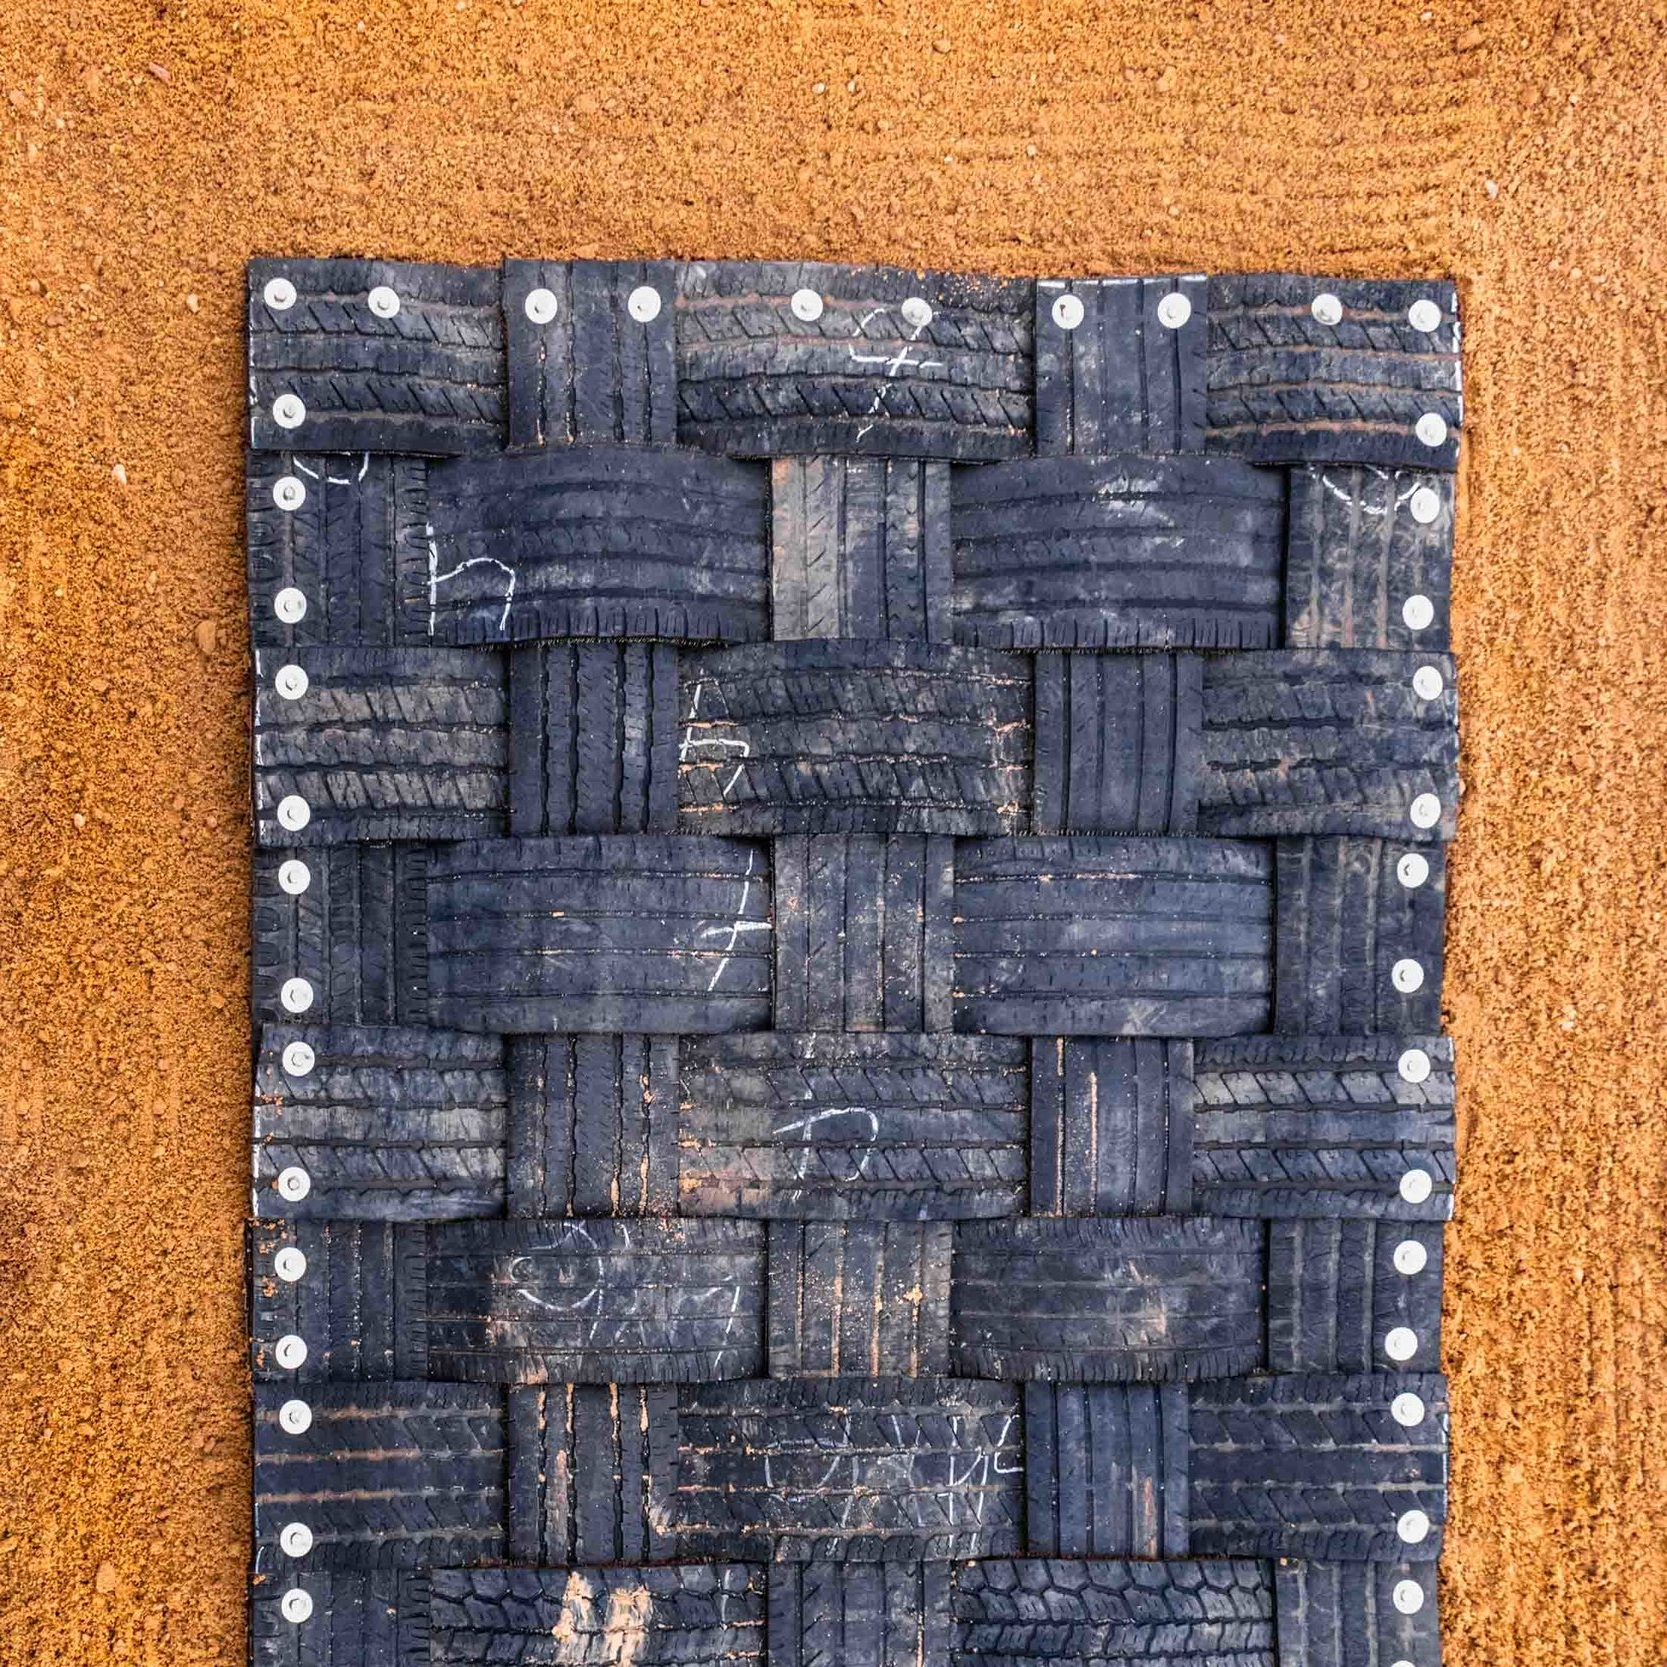 Double D Cattle Mat: Aerial view.